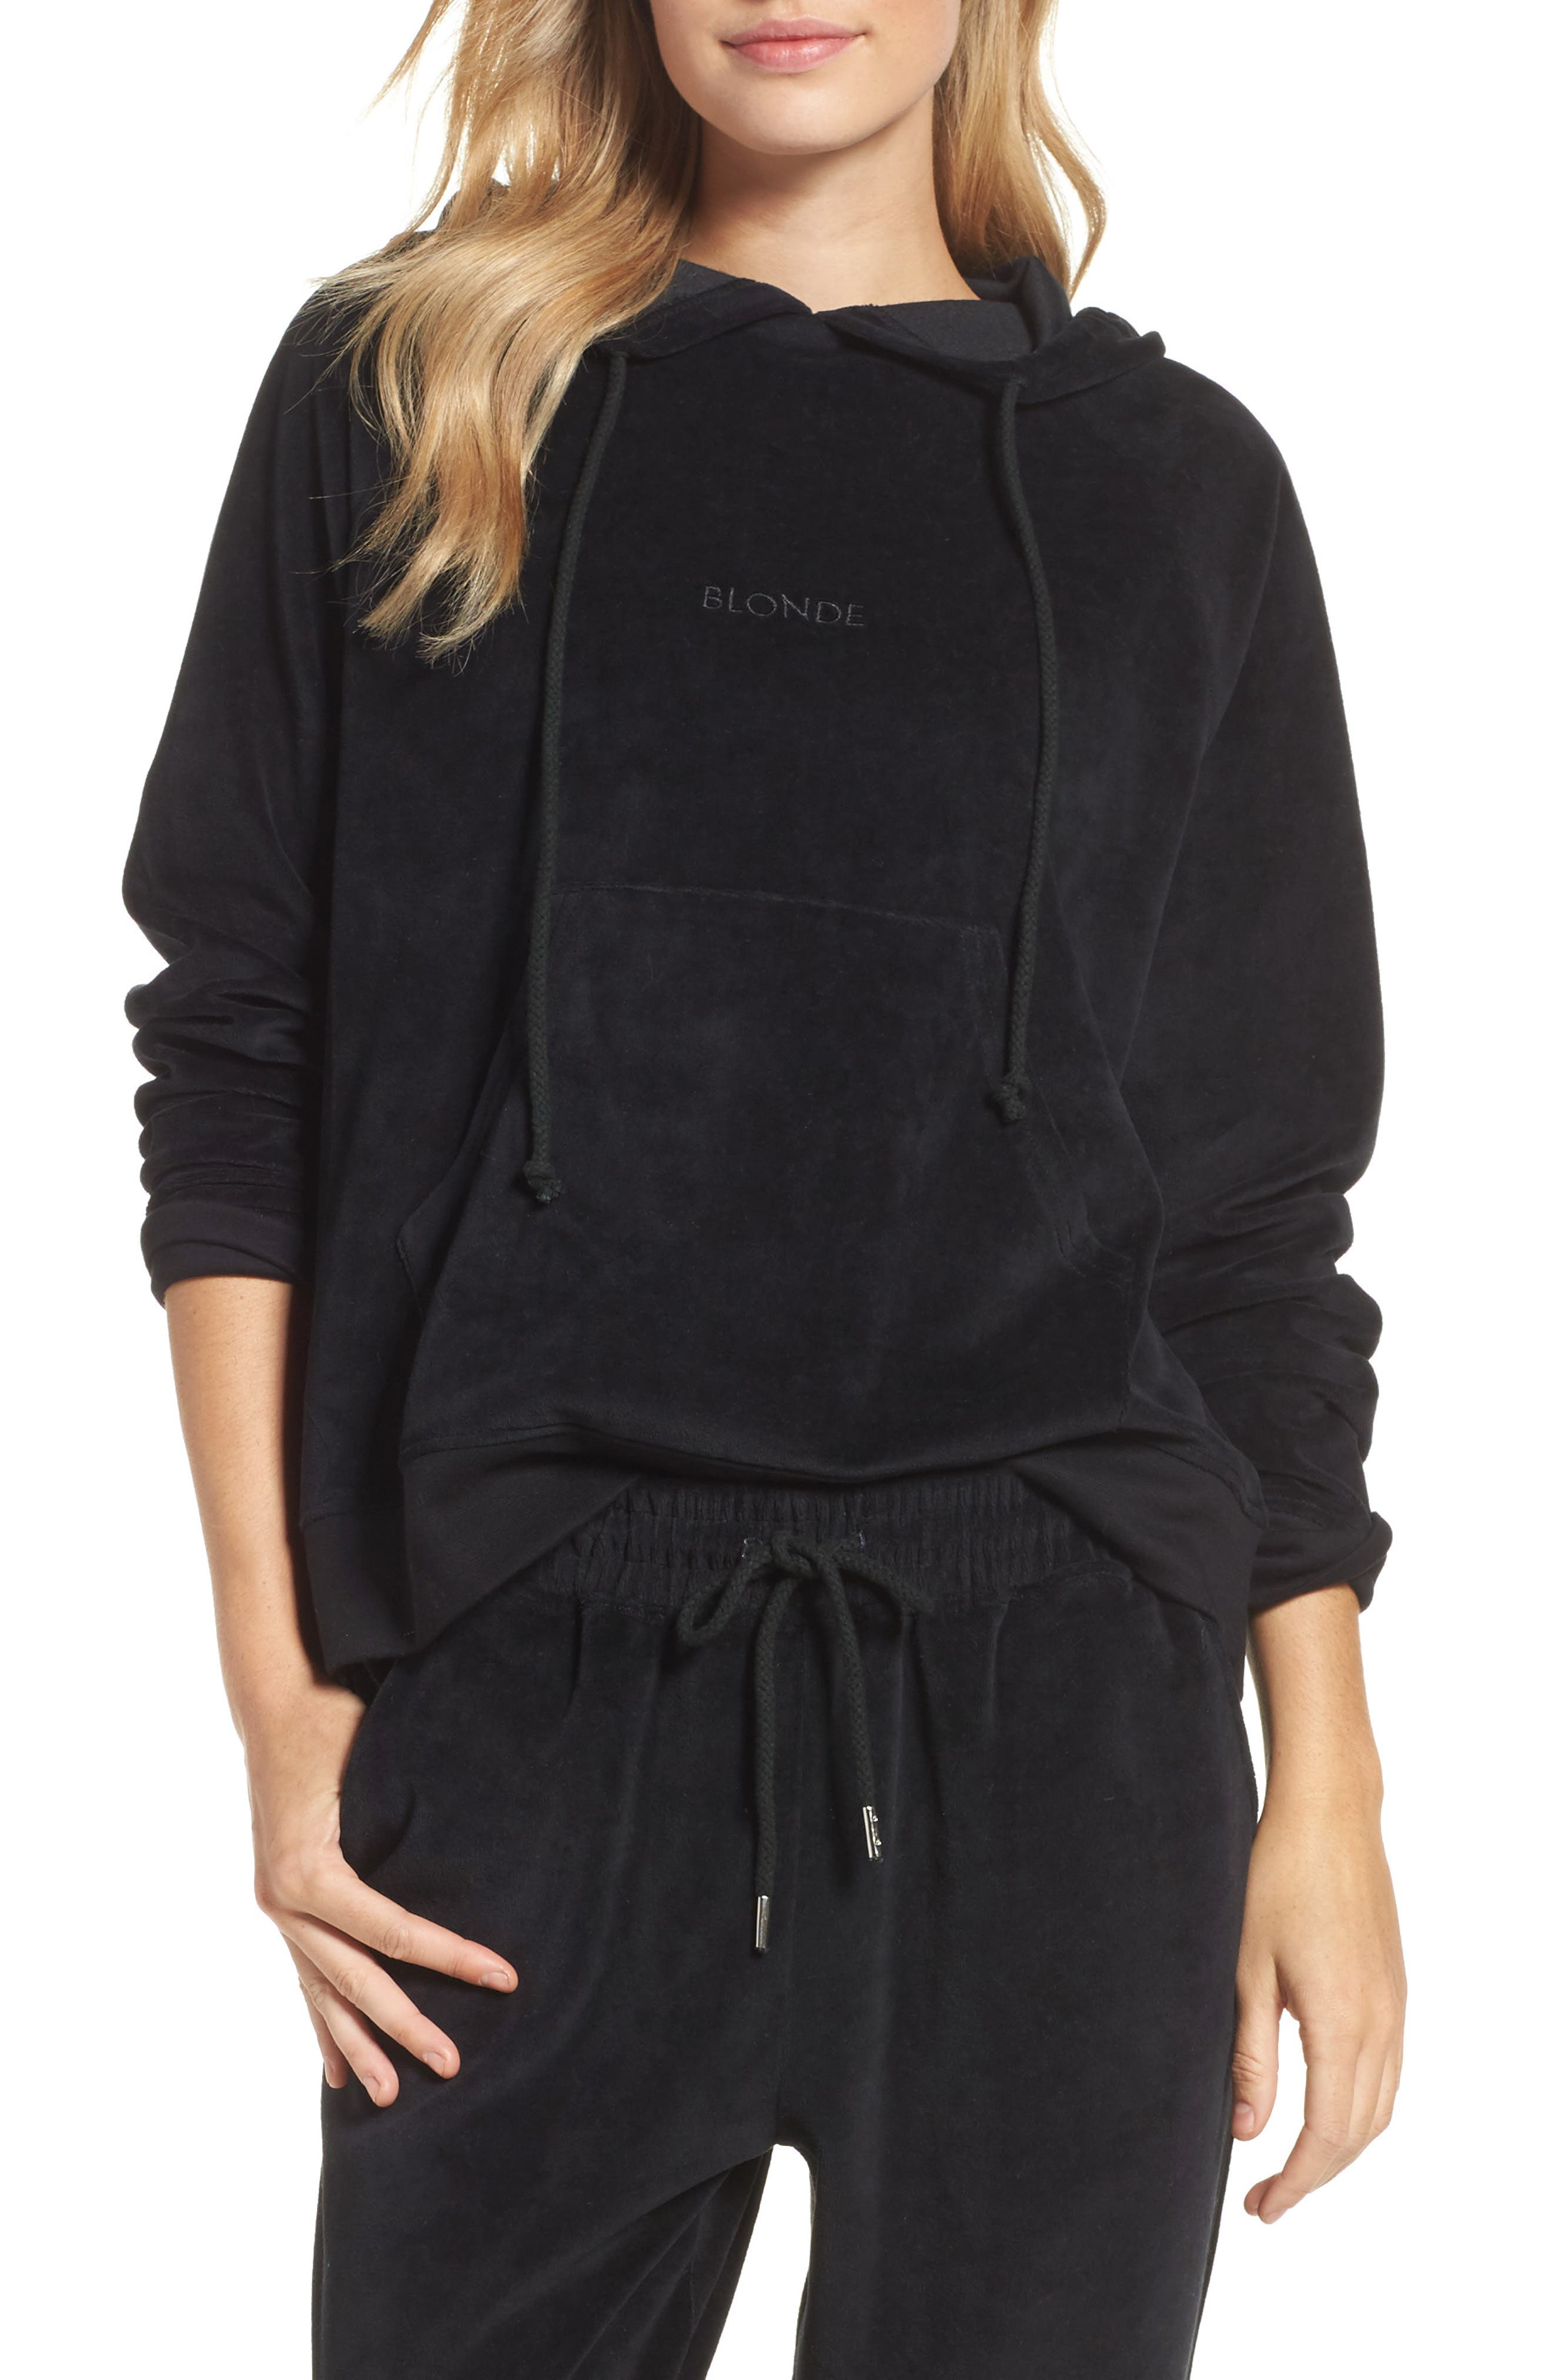 Blonde Embroidered Velour Hoodie,                         Main,                         color, Black